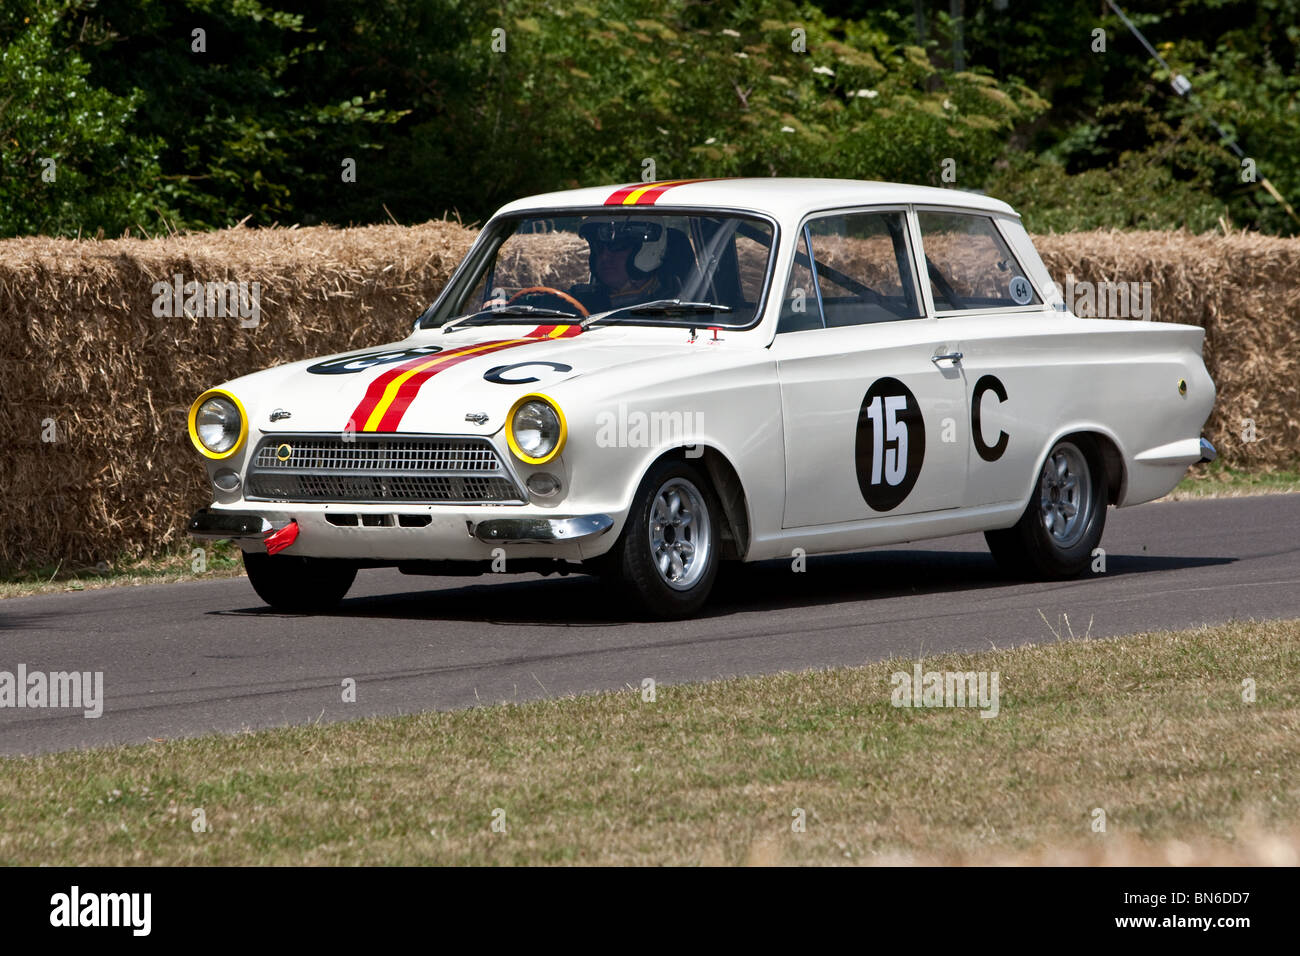 1964 ford lotus cortina mk1 bathurst at the festival of speed goodwood 2010